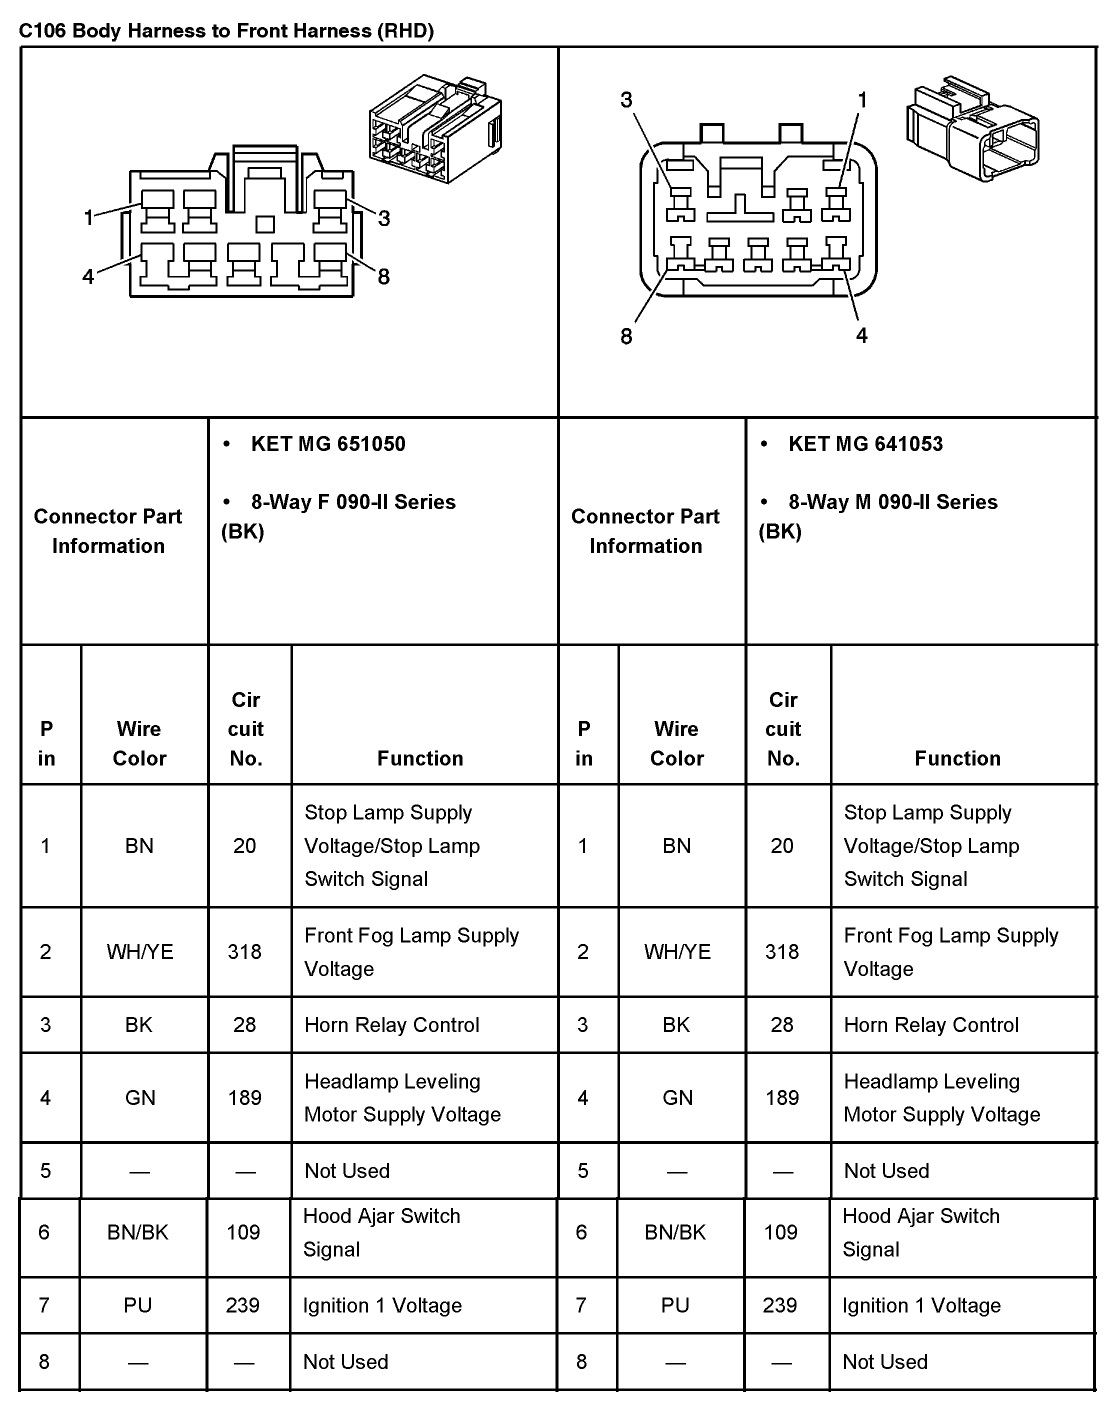 7331d1383704576 2005 aveo master connector list diagrams conn3 jpg 2005 aveo master connector list and diagrams 2006 chevy aveo fuse box diagram at soozxer.org